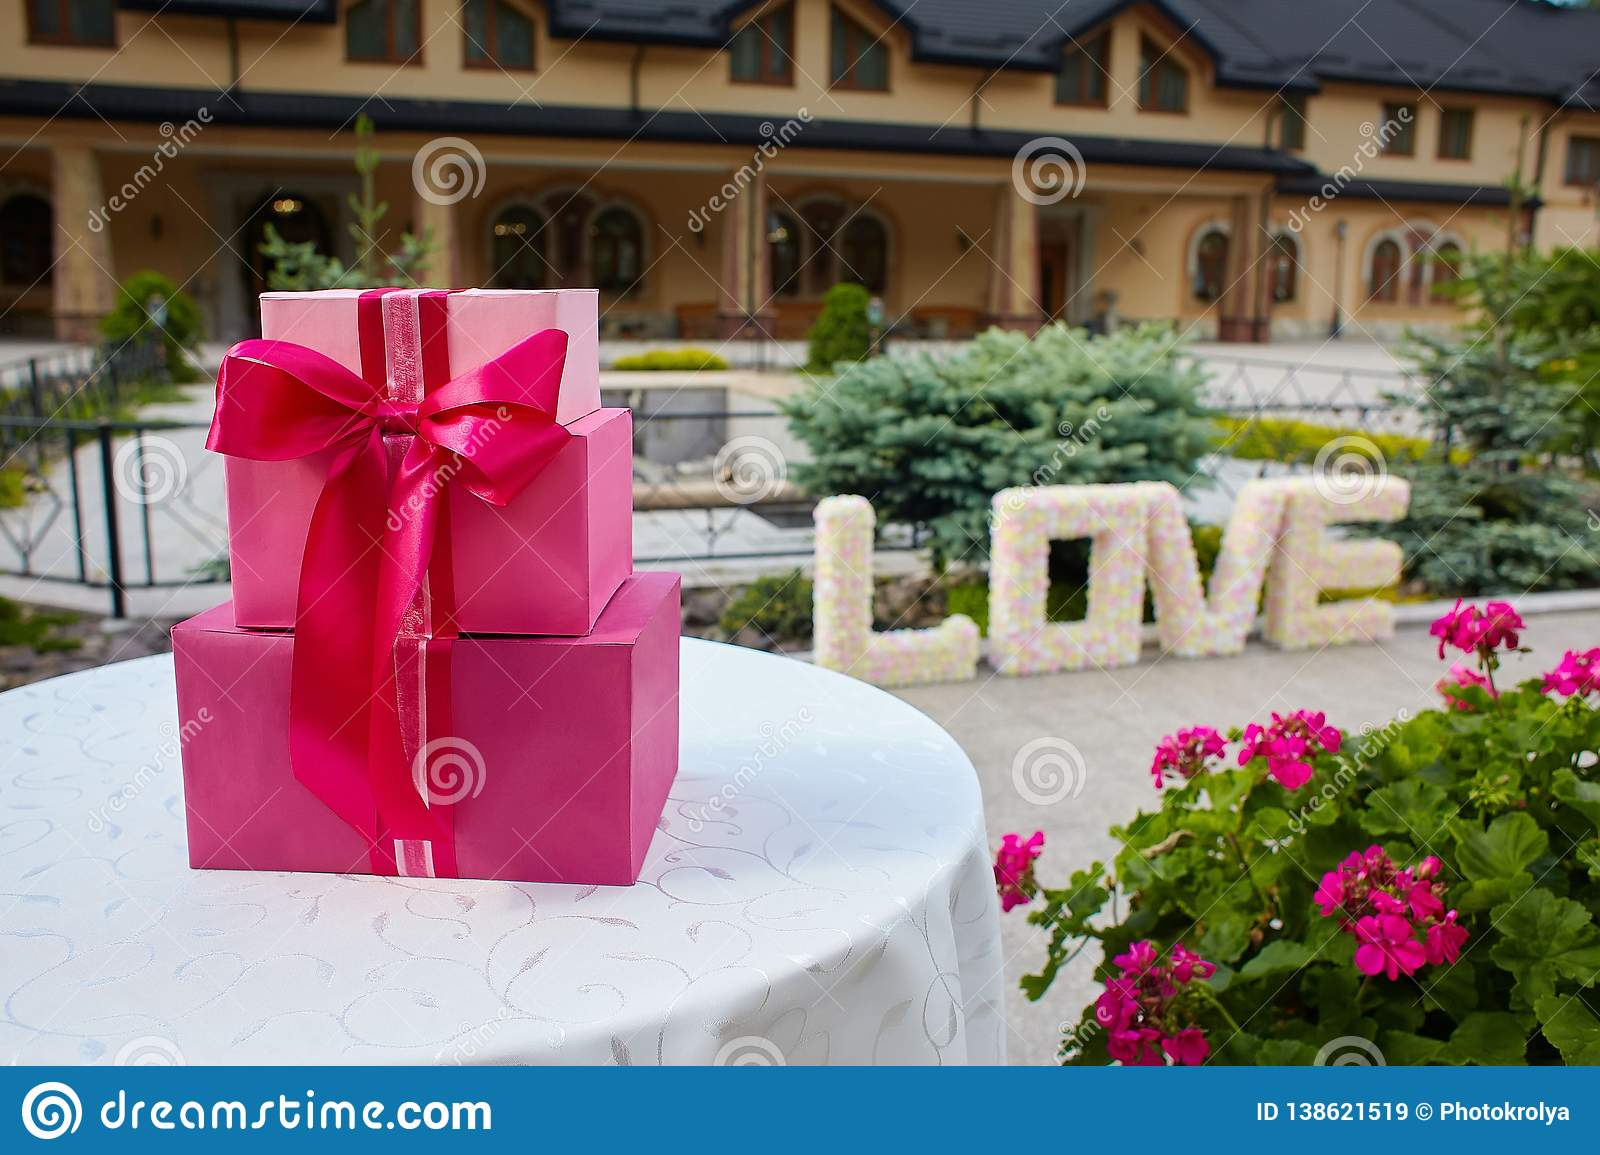 Pink gift boxes on a circle white table outdoors. Word Love made of paper flowers outdoors.